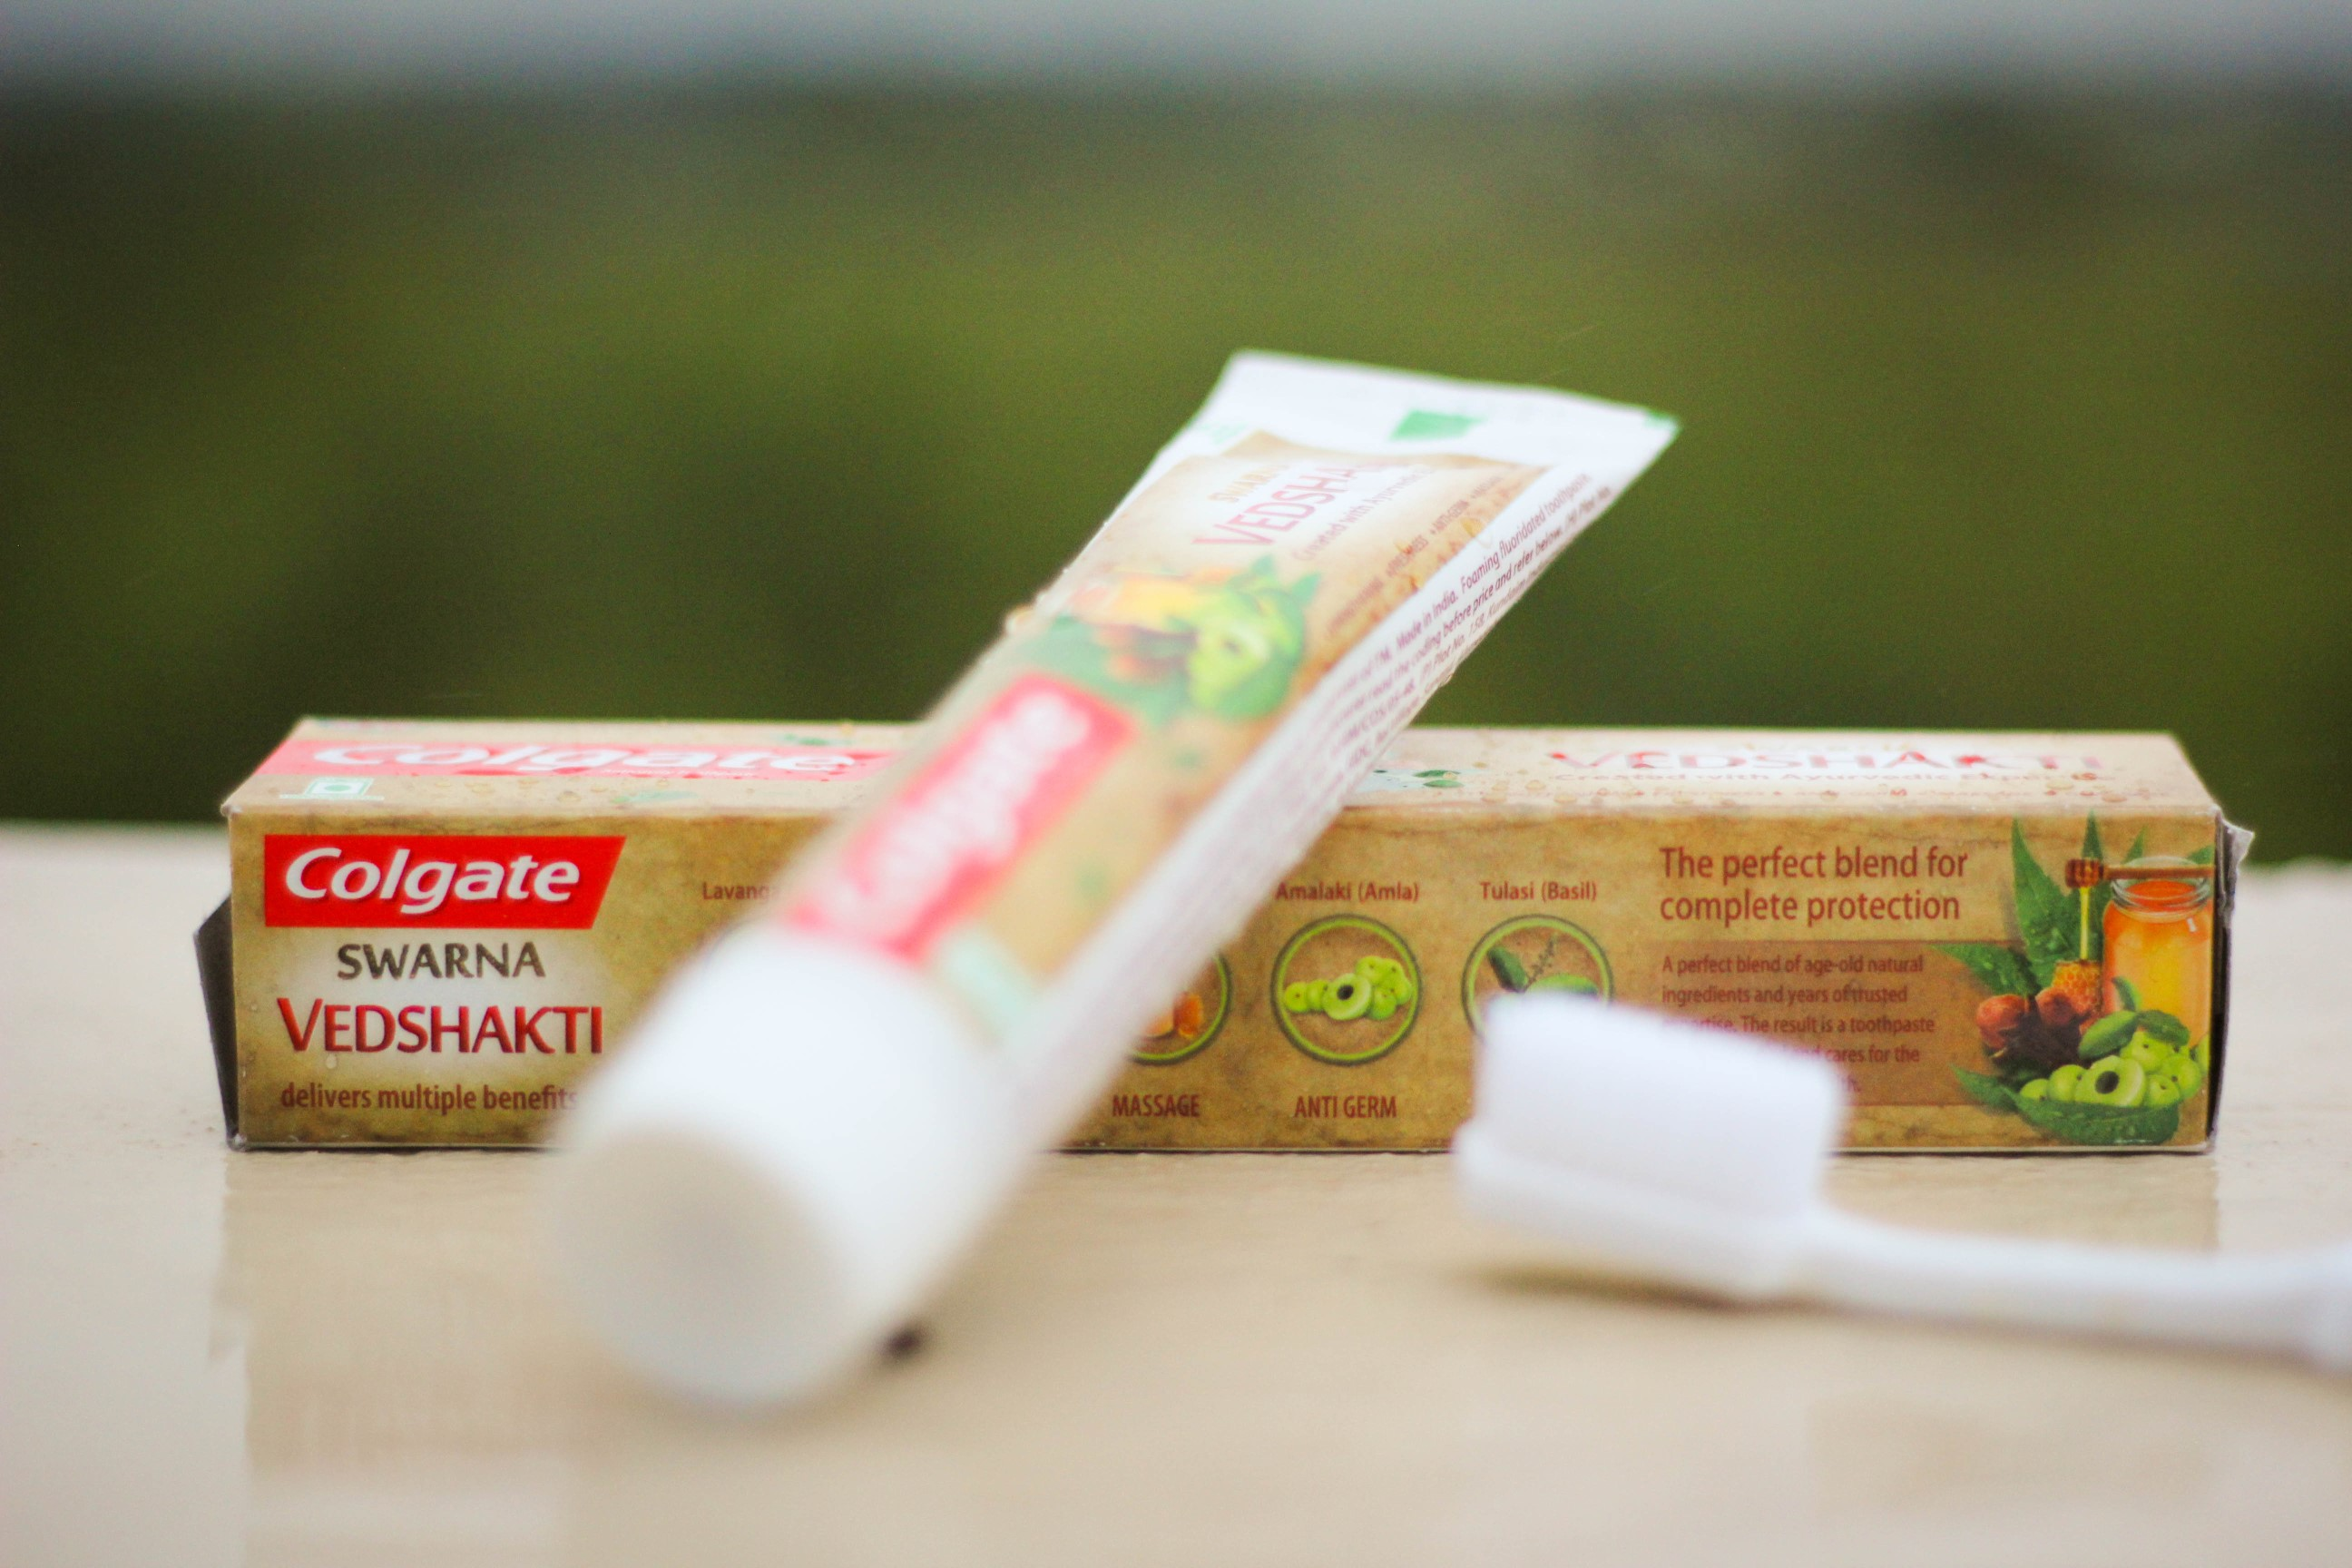 colgate vedshakti herbal toothpaste review india